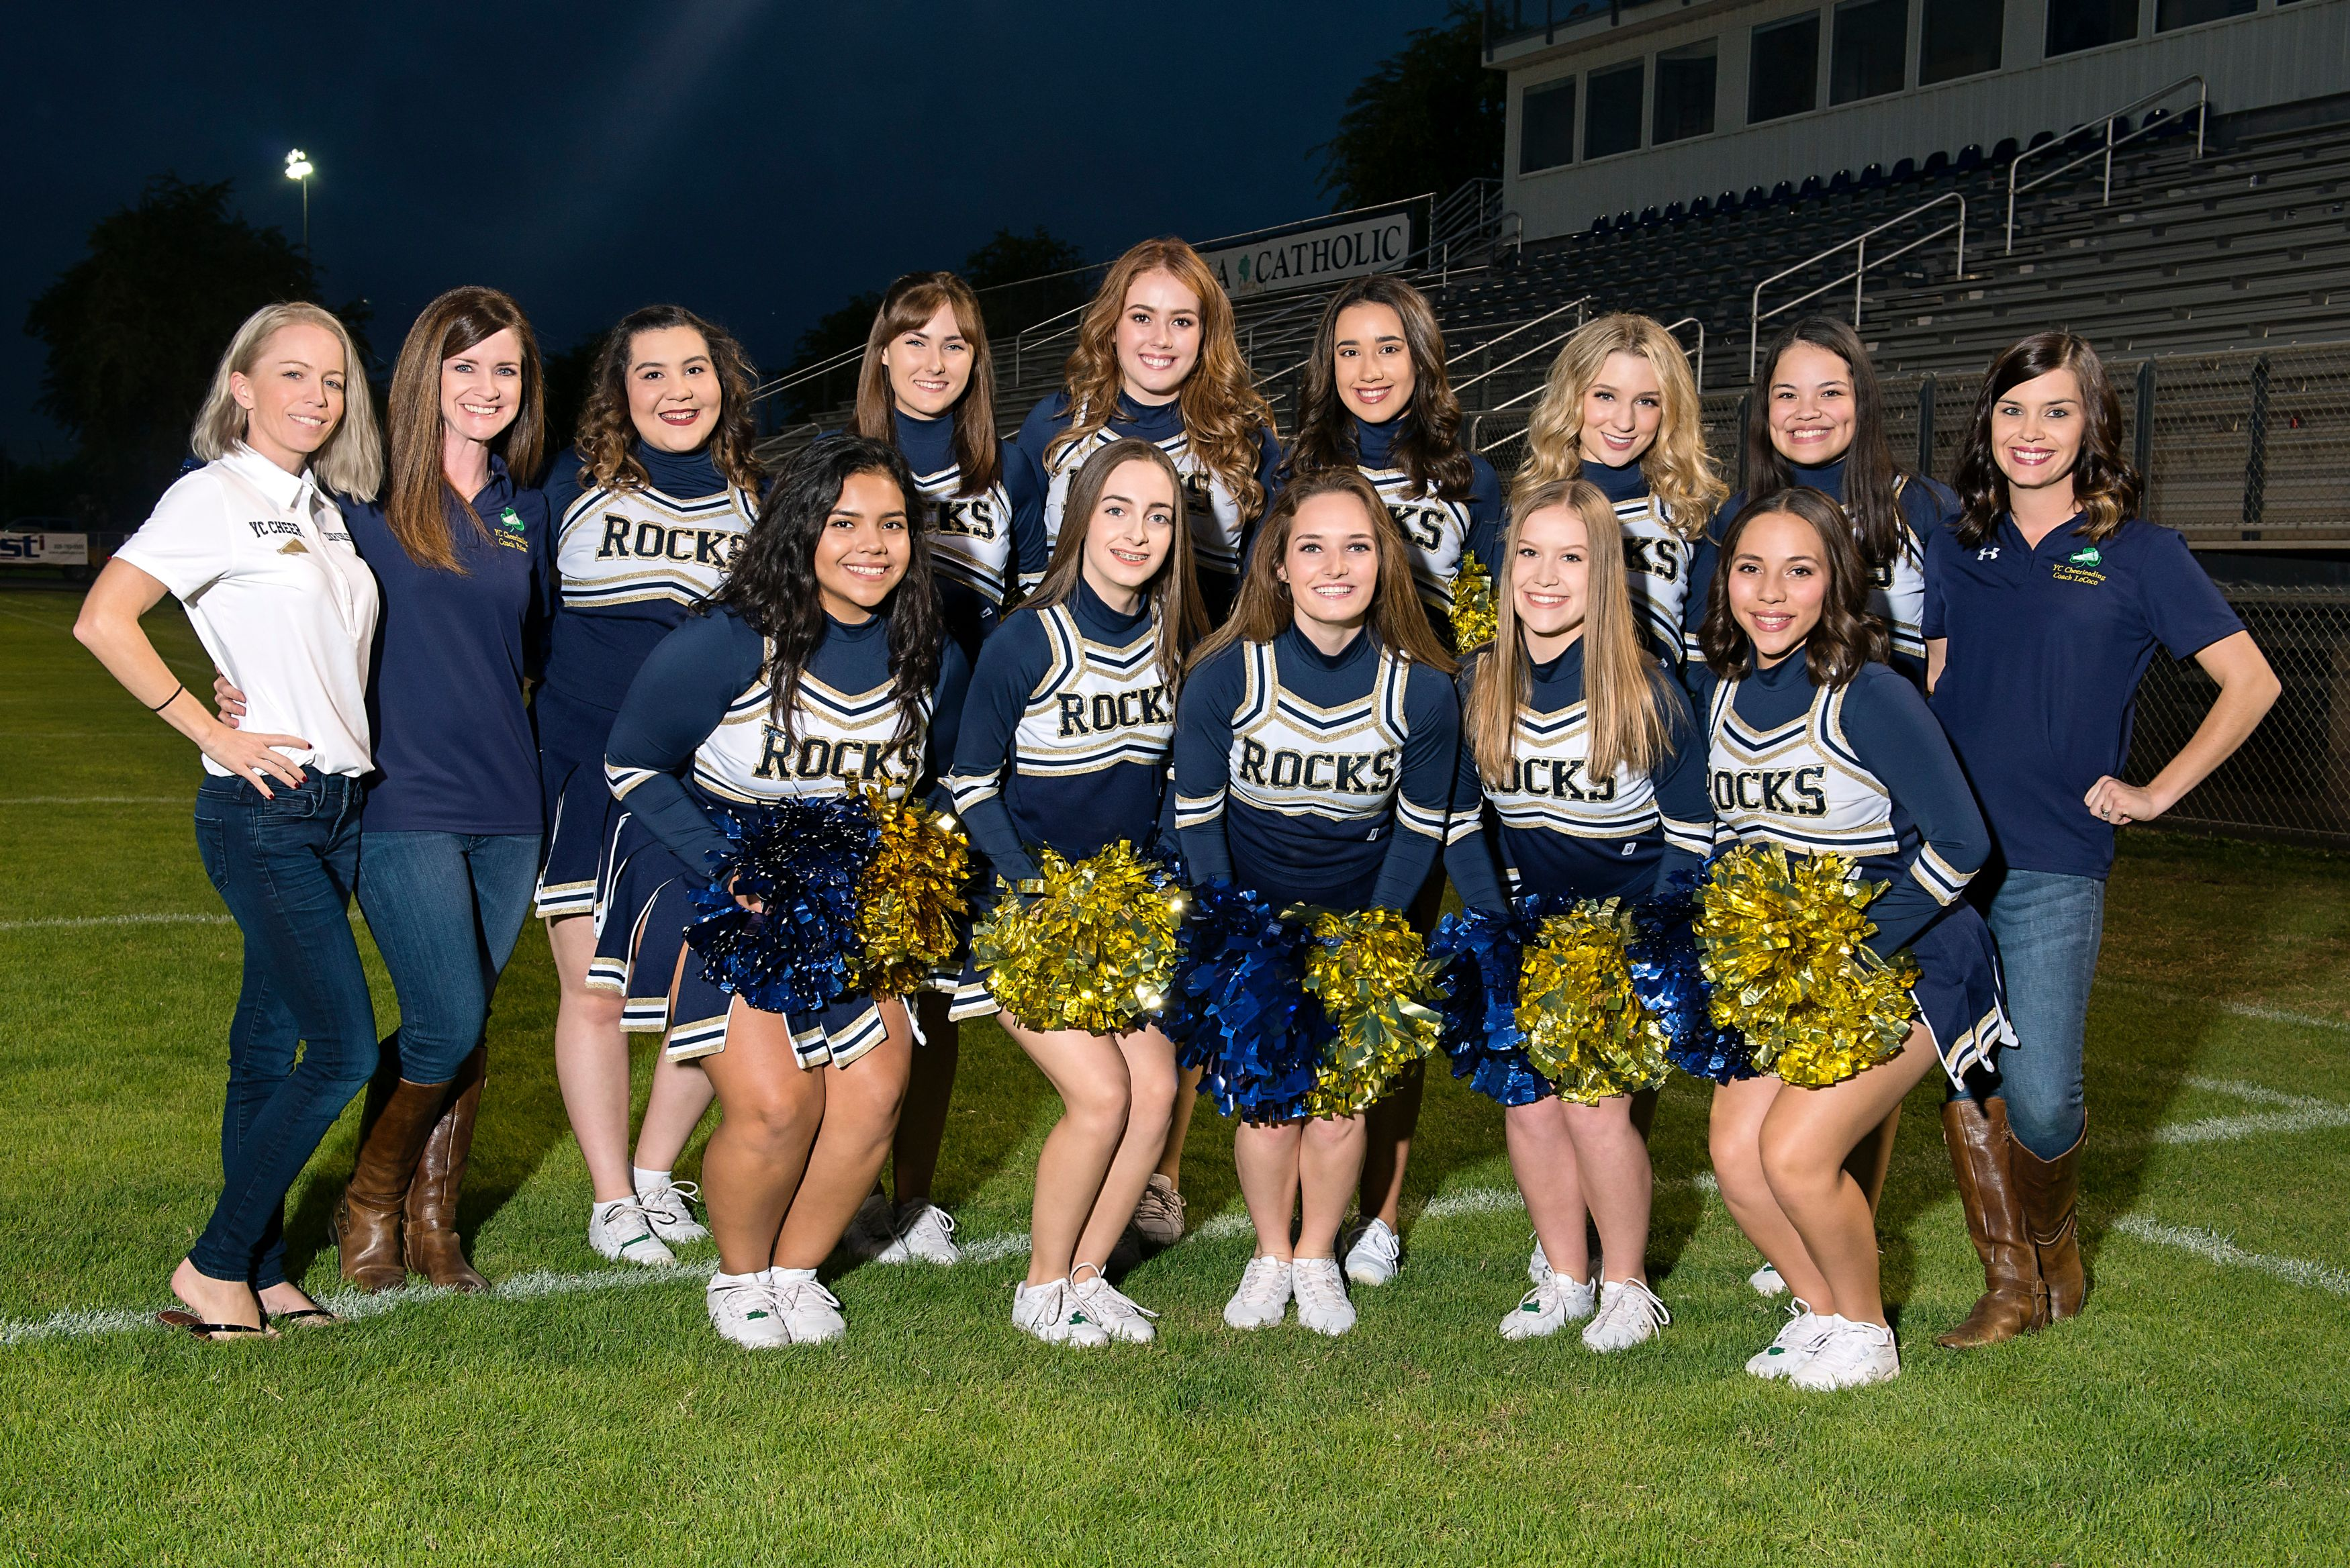 cheerleading yuma catholic high school